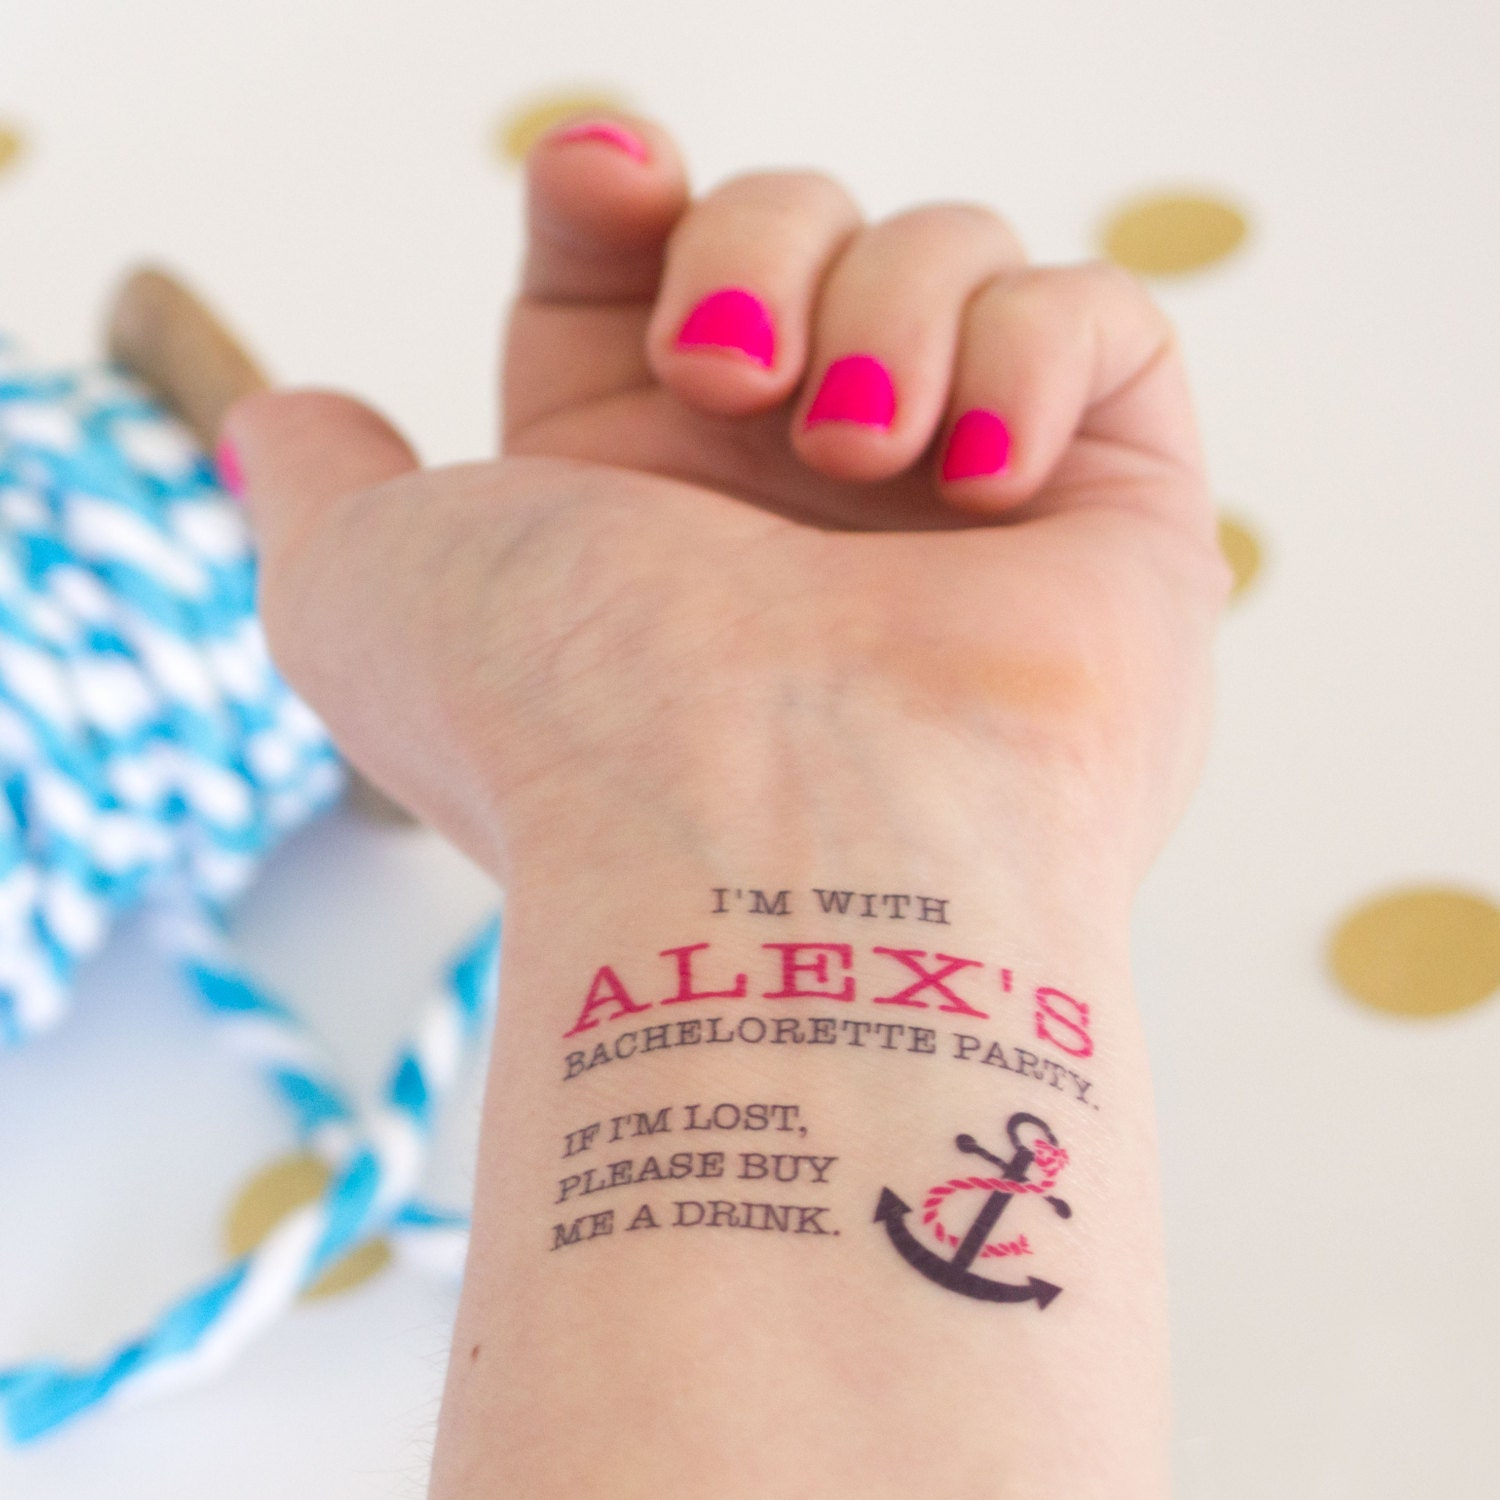 Bachelorette Temporary Tattoos Nautical Themed If Lost Buy